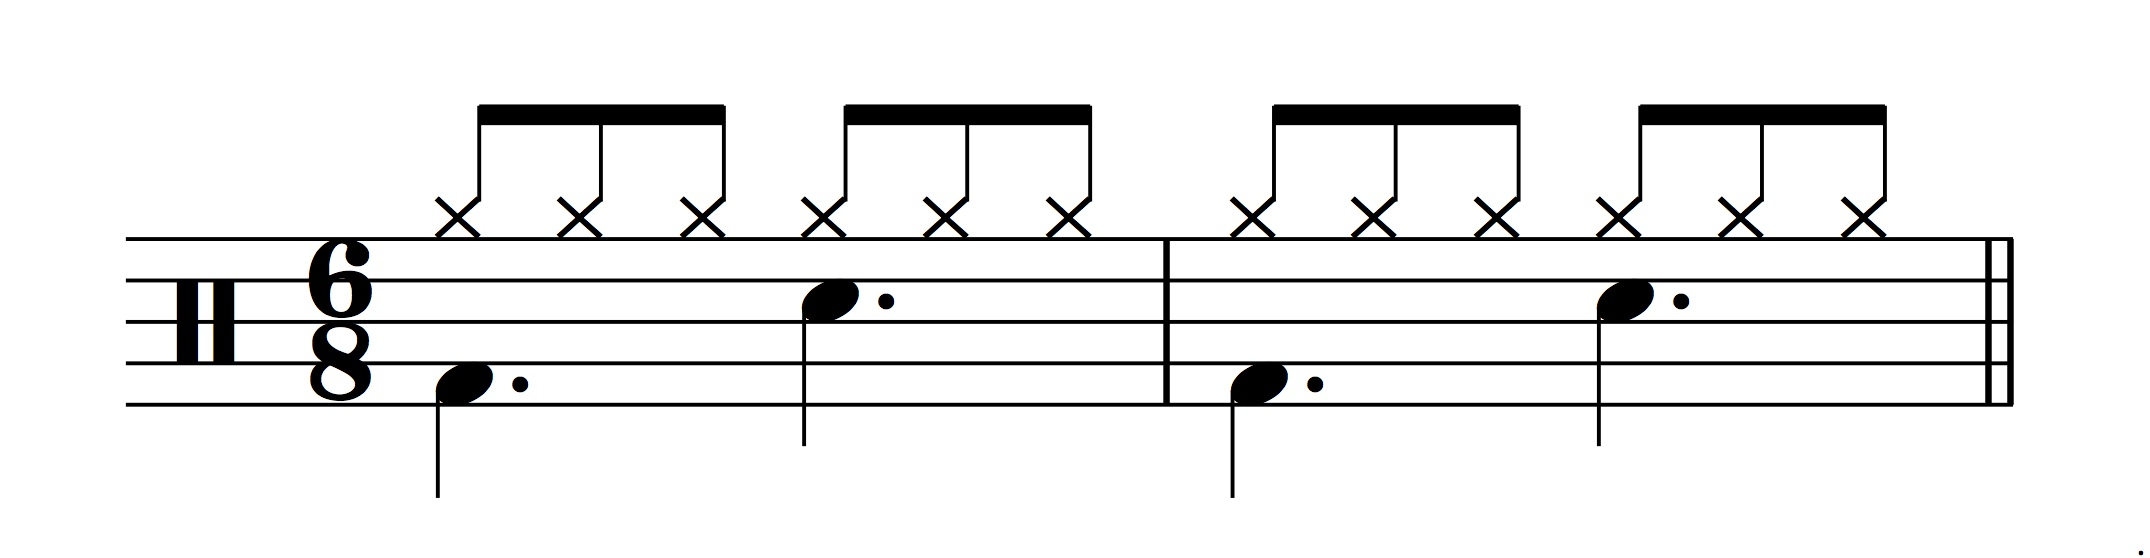 Figure 8.: Model for a standard 6/8 drum beat.